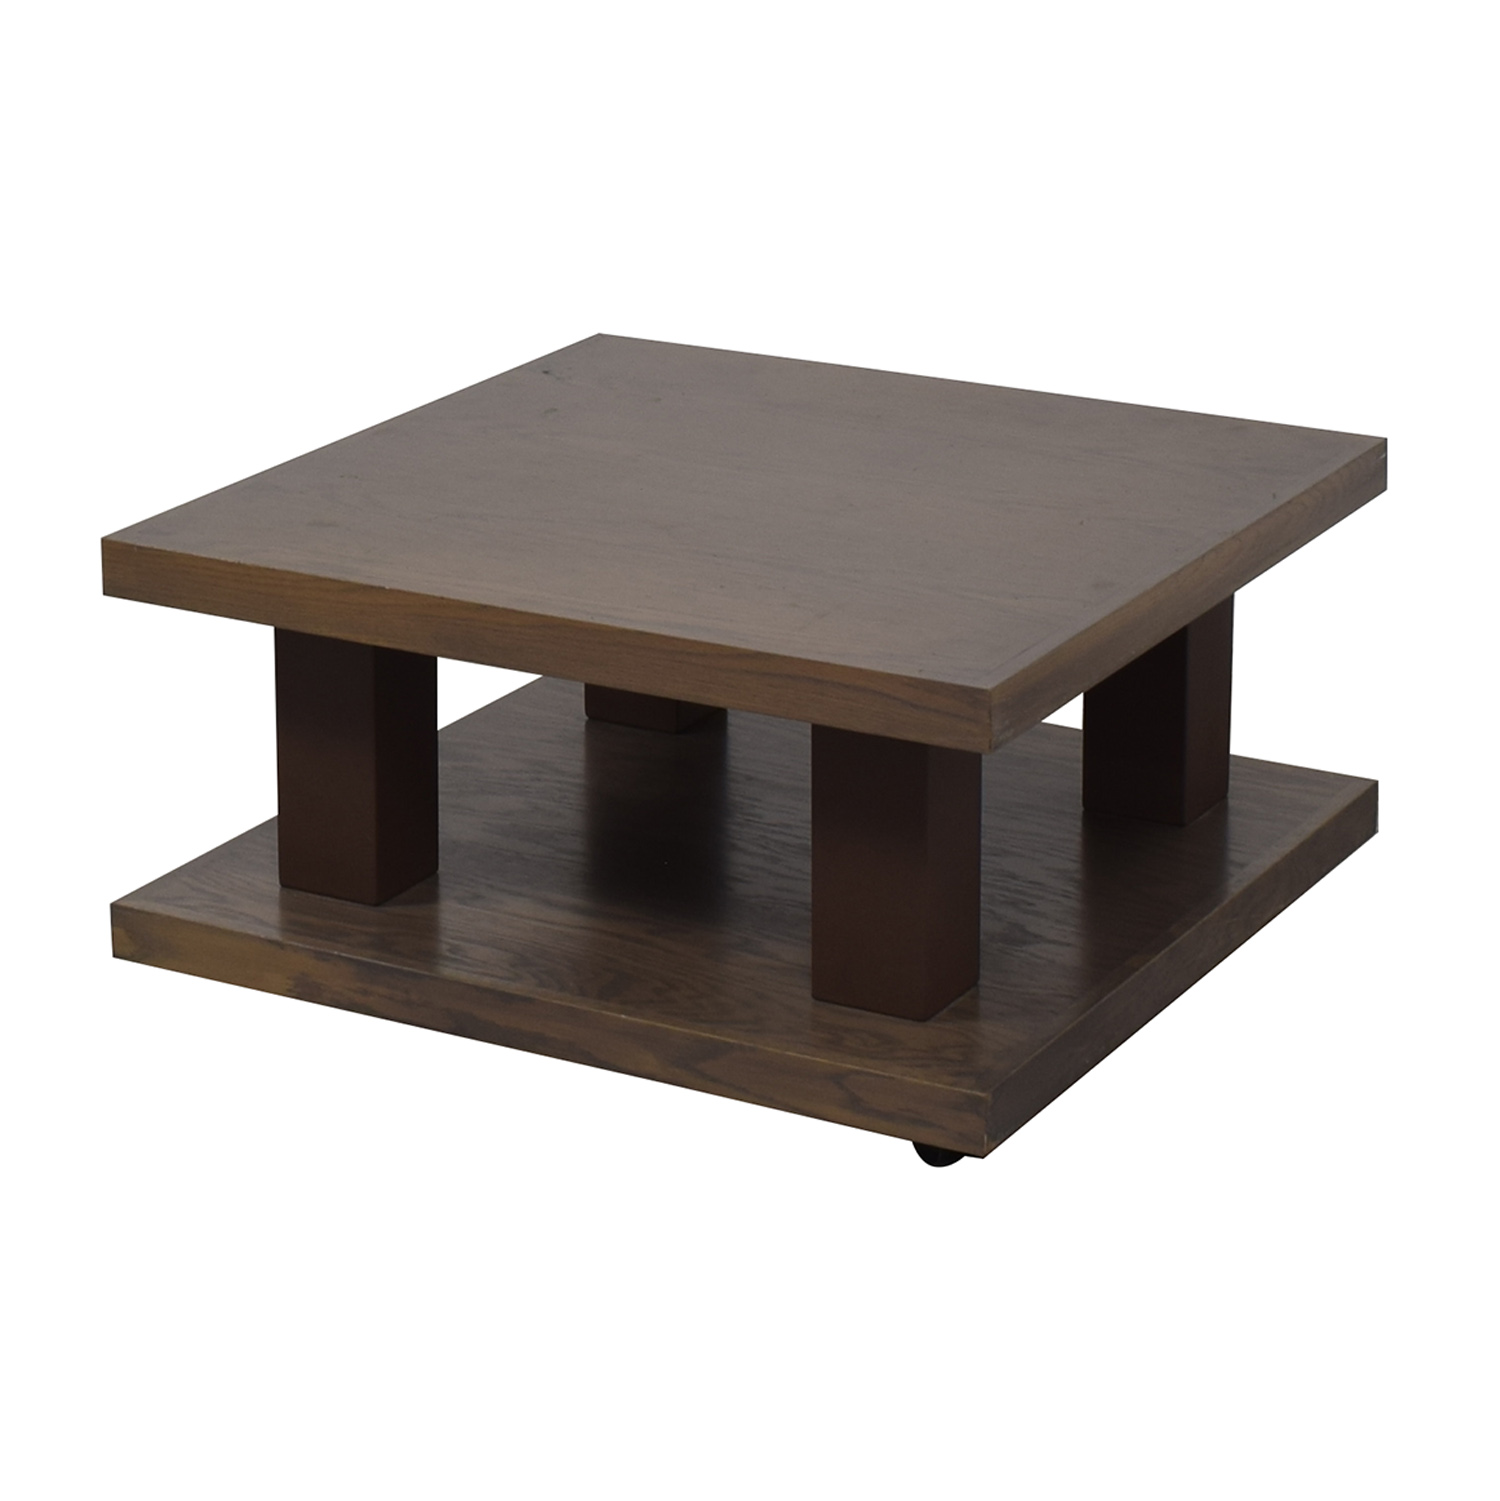 buy aspenhome Grey Driftwood Square Coffee Table On Wheels aspenhome